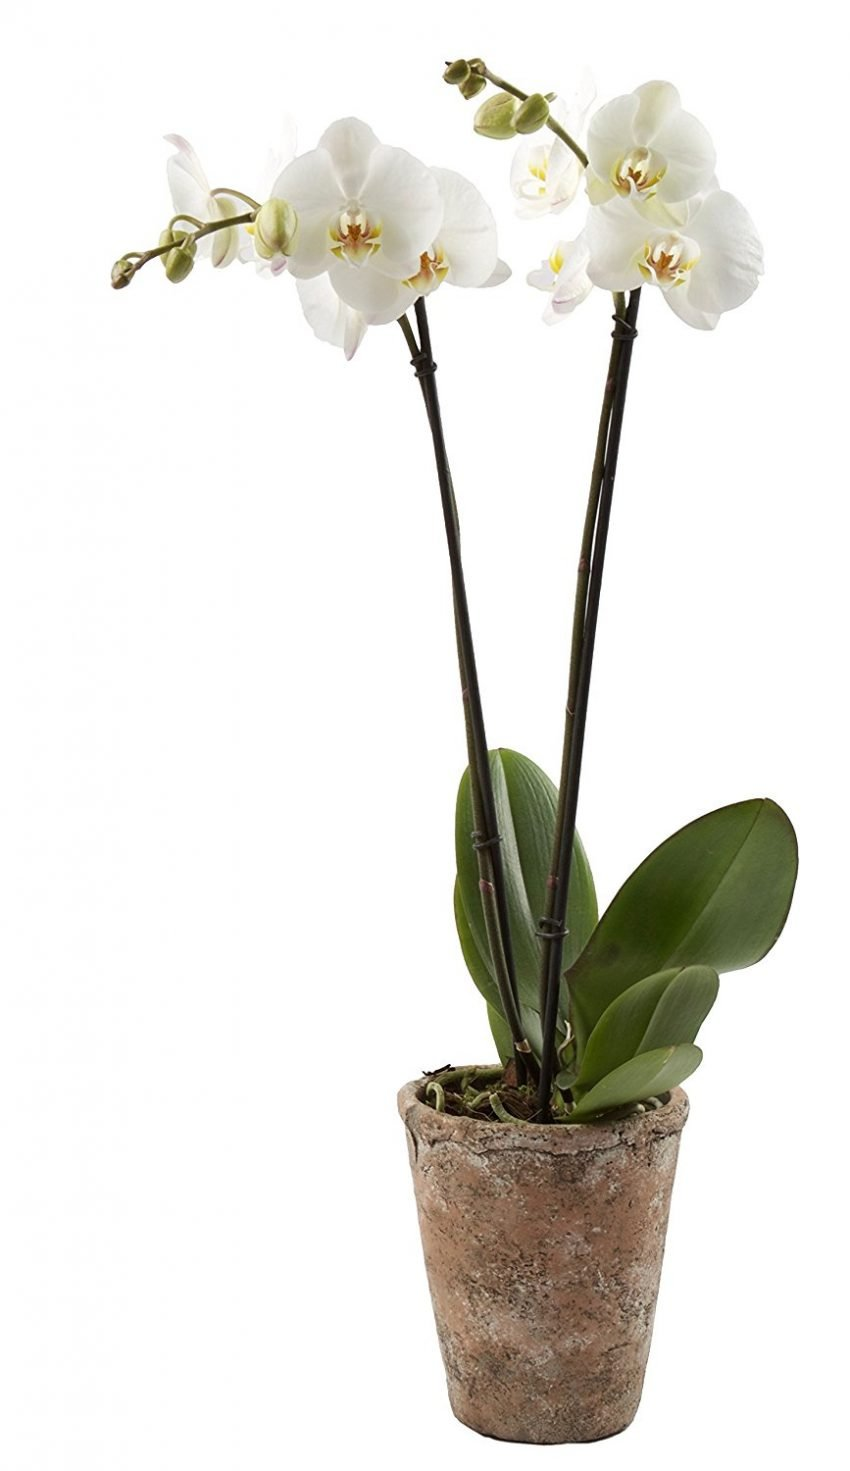 25 Office Desk Plants - Color Orchids